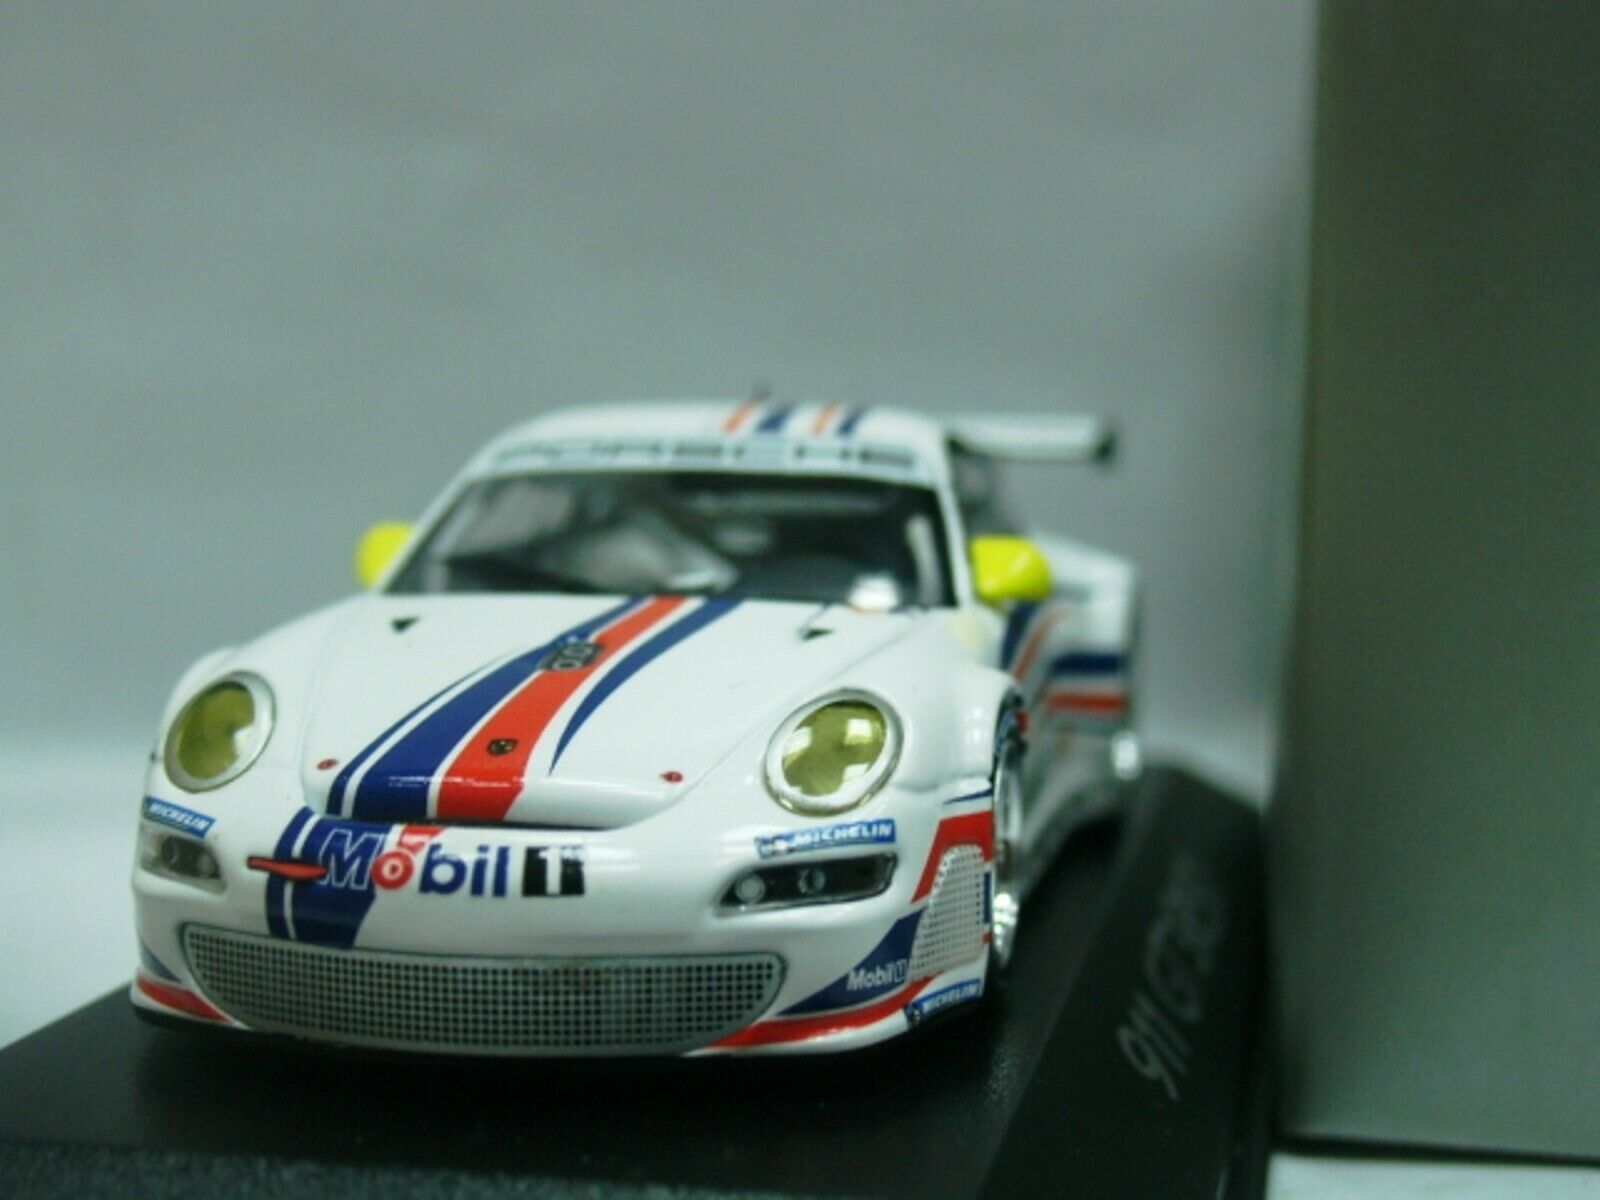 Wow extrêmement rare Porsche 997 911 2006 GT3 RSR PLAIN BODY 1 43 Minichamps-GT2